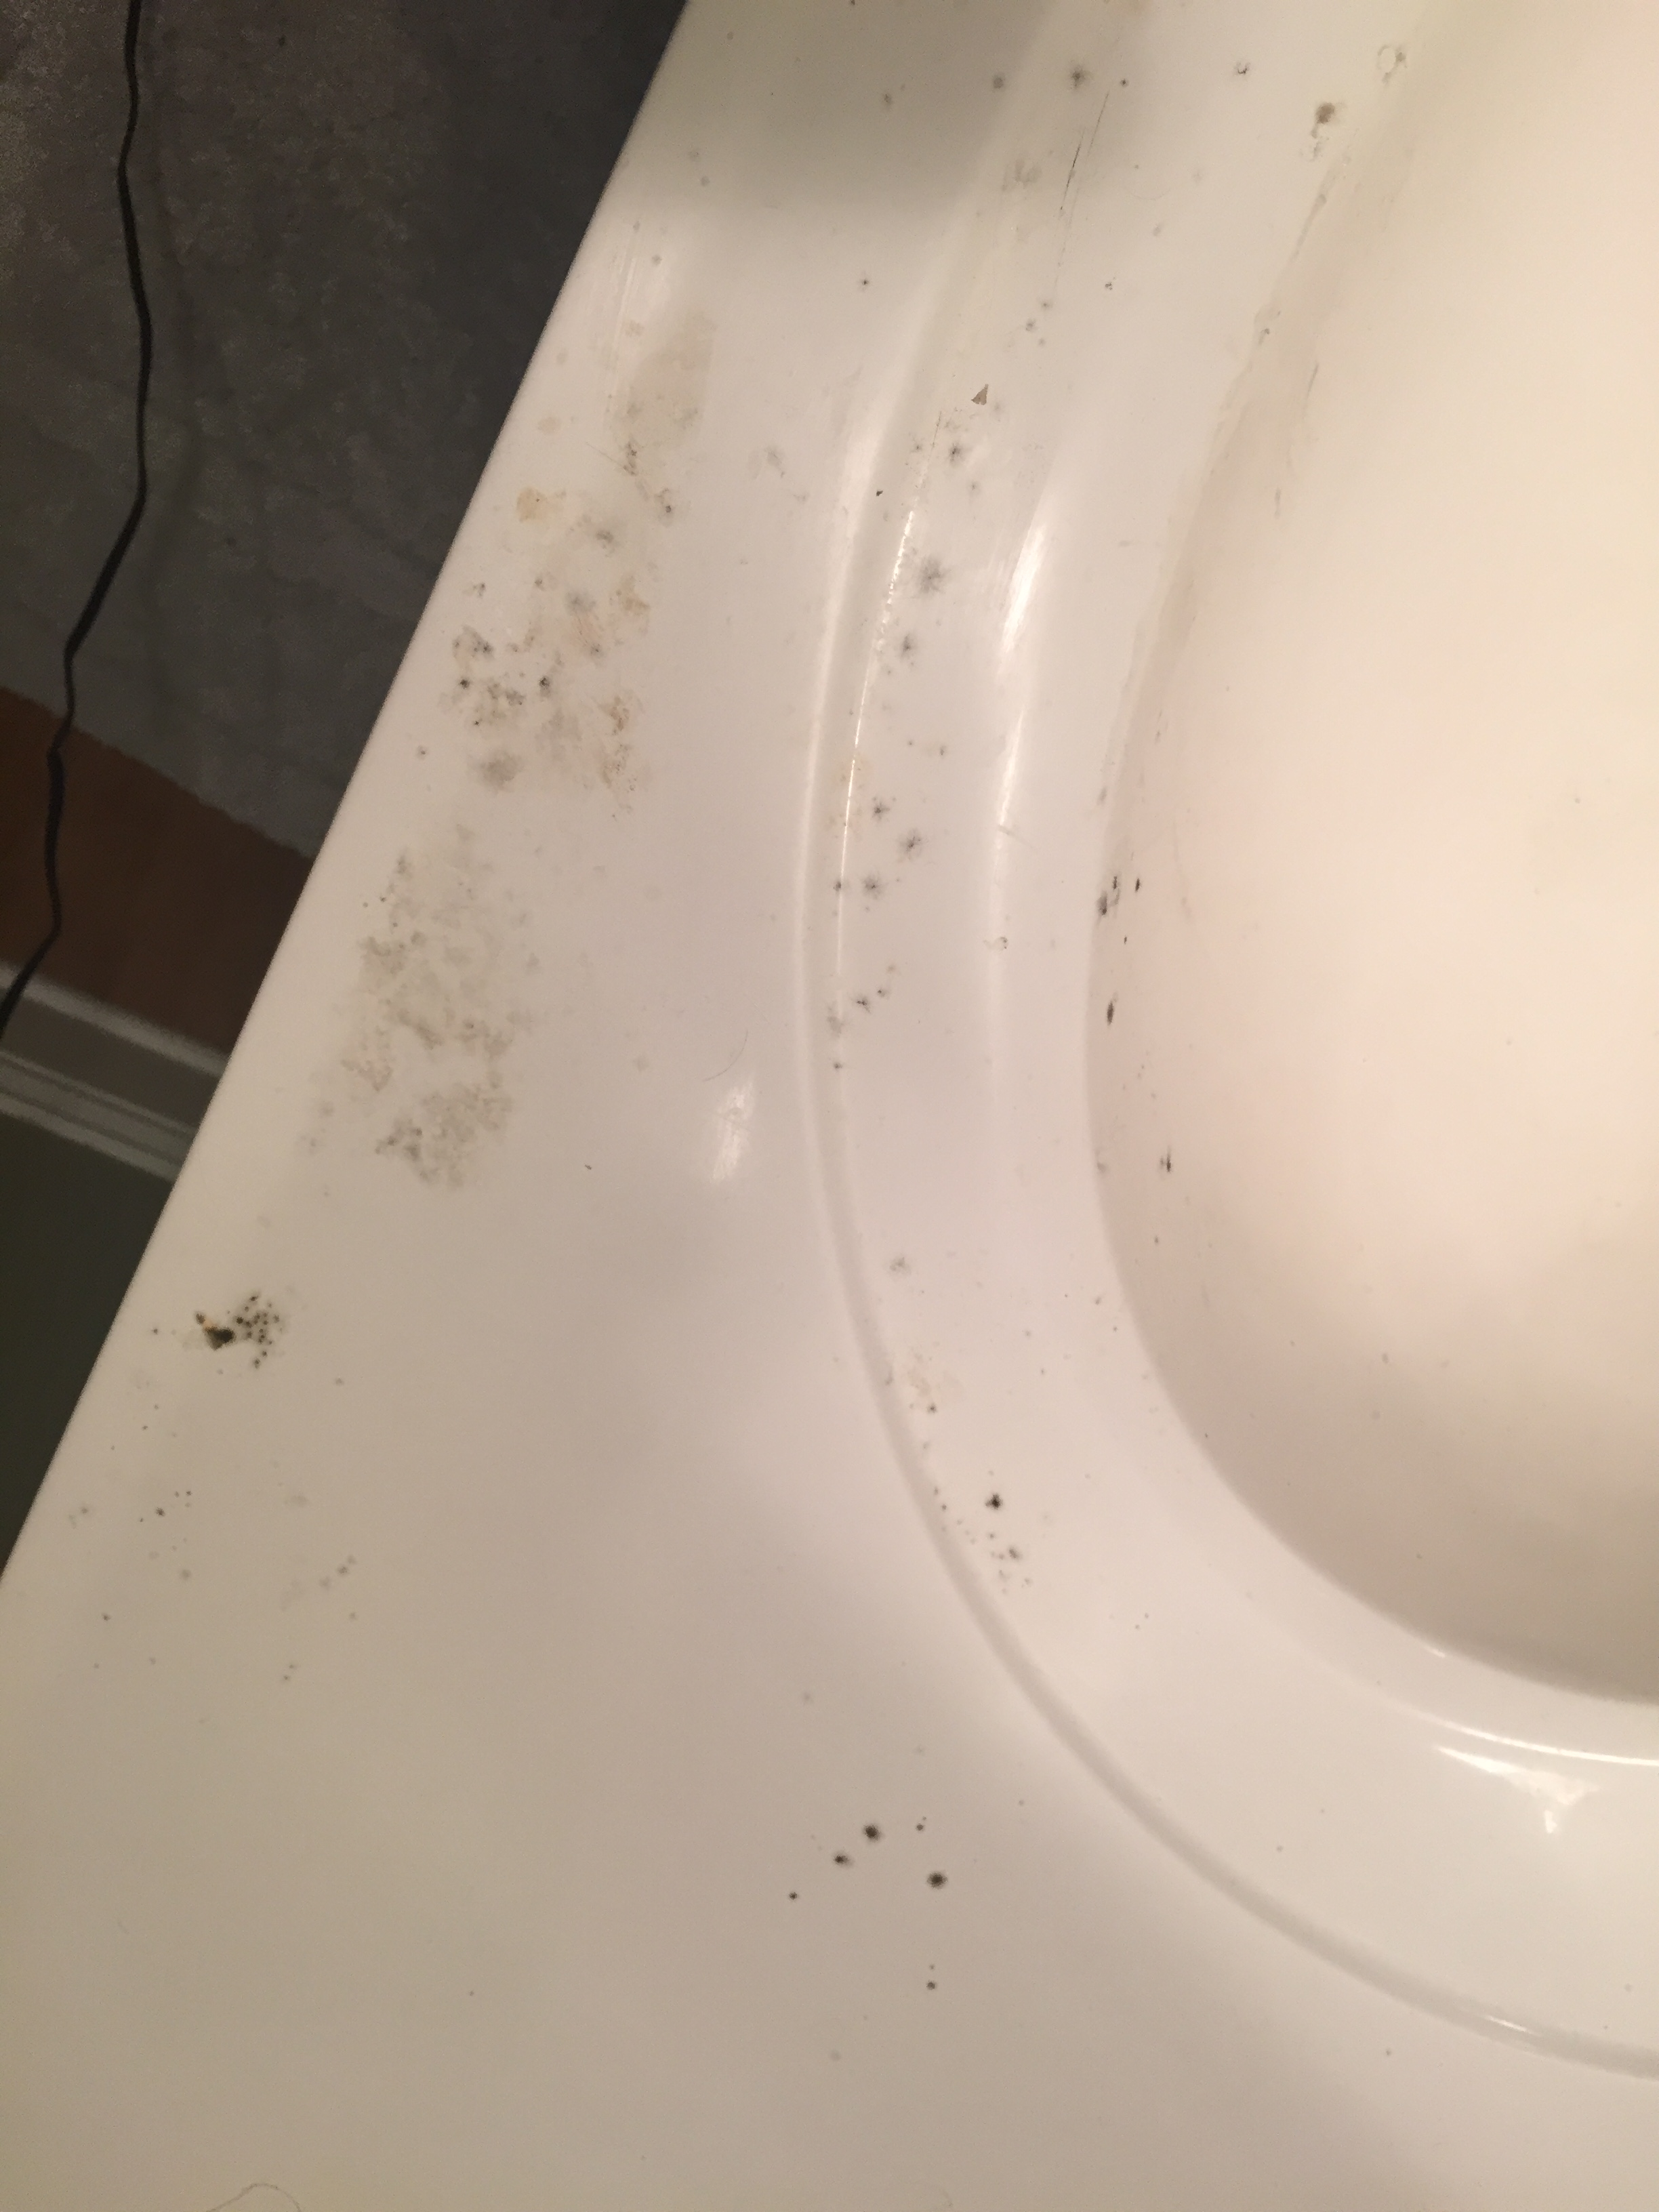 How mold took our stuff archives world wide with katherine for Black mold bathroom sink